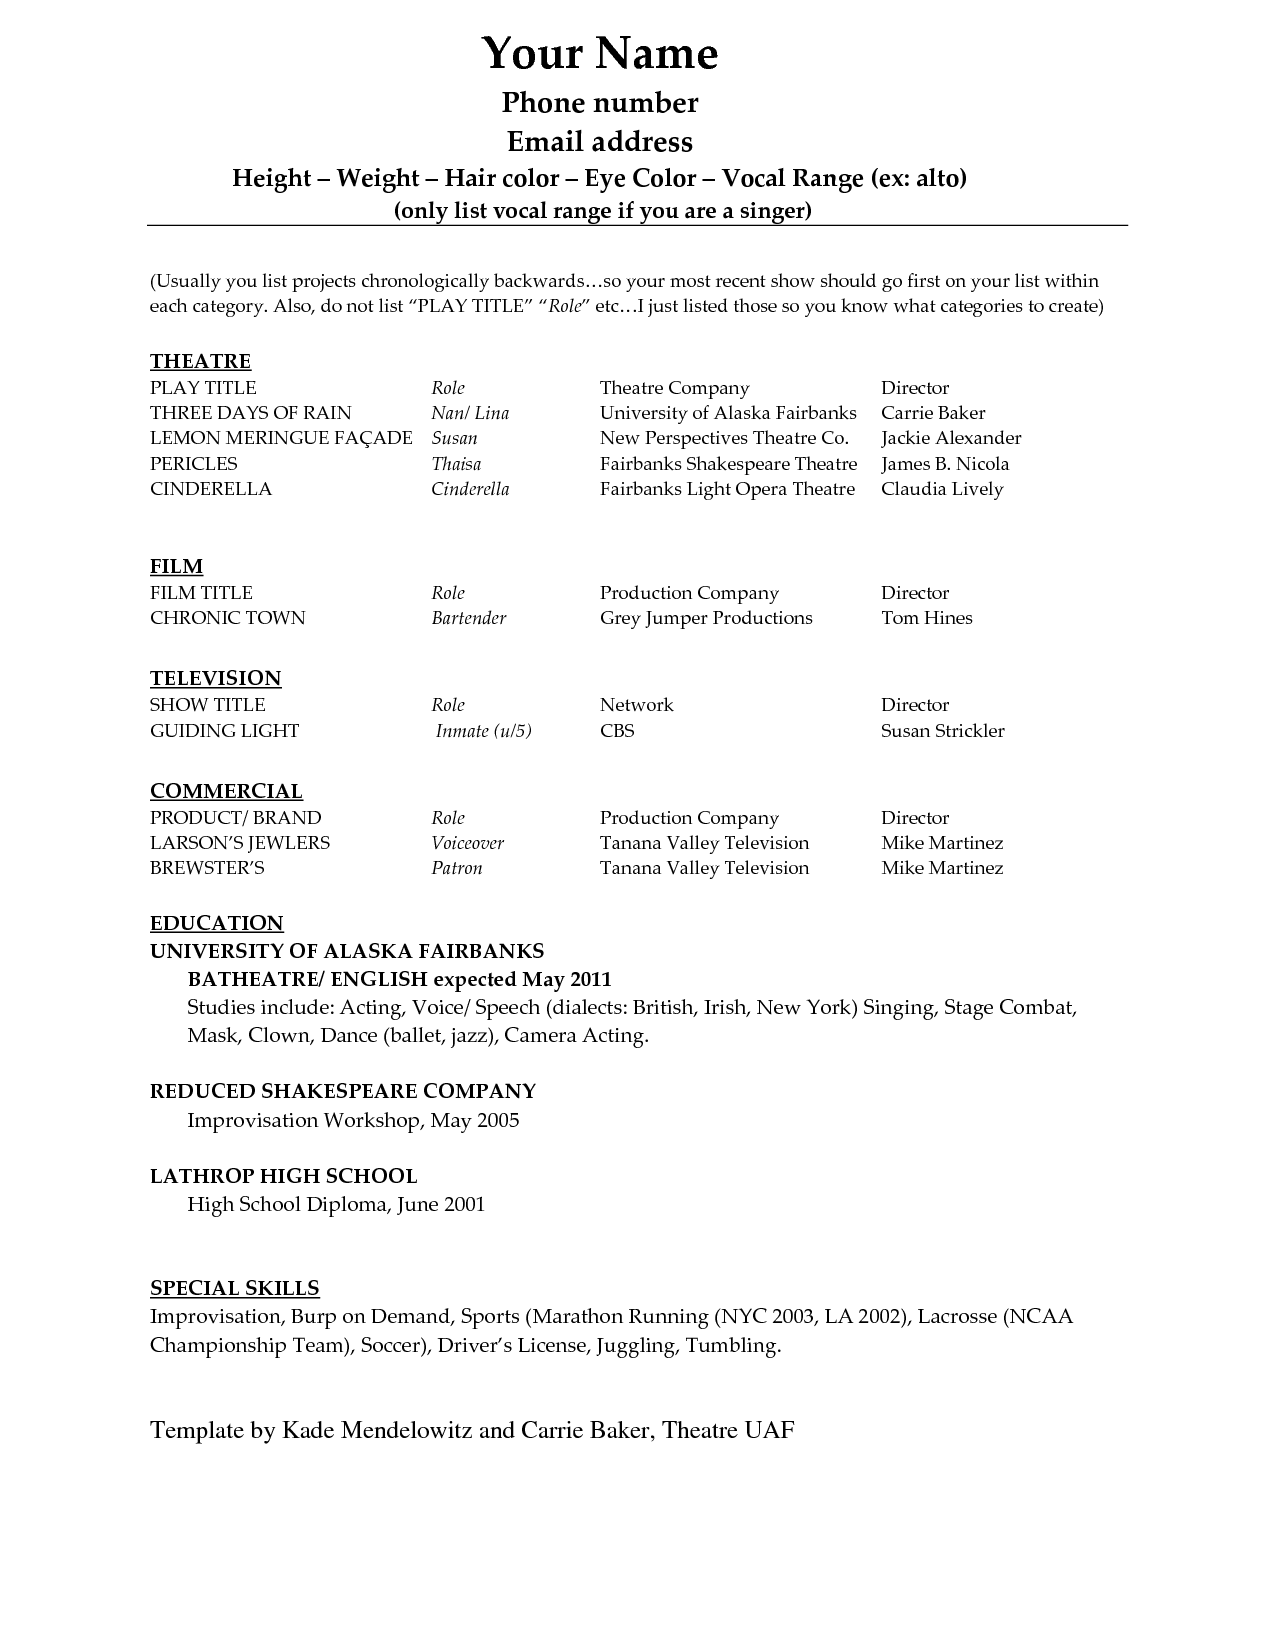 Acting Resume Template Download Free httpwwwresumecareerinfo